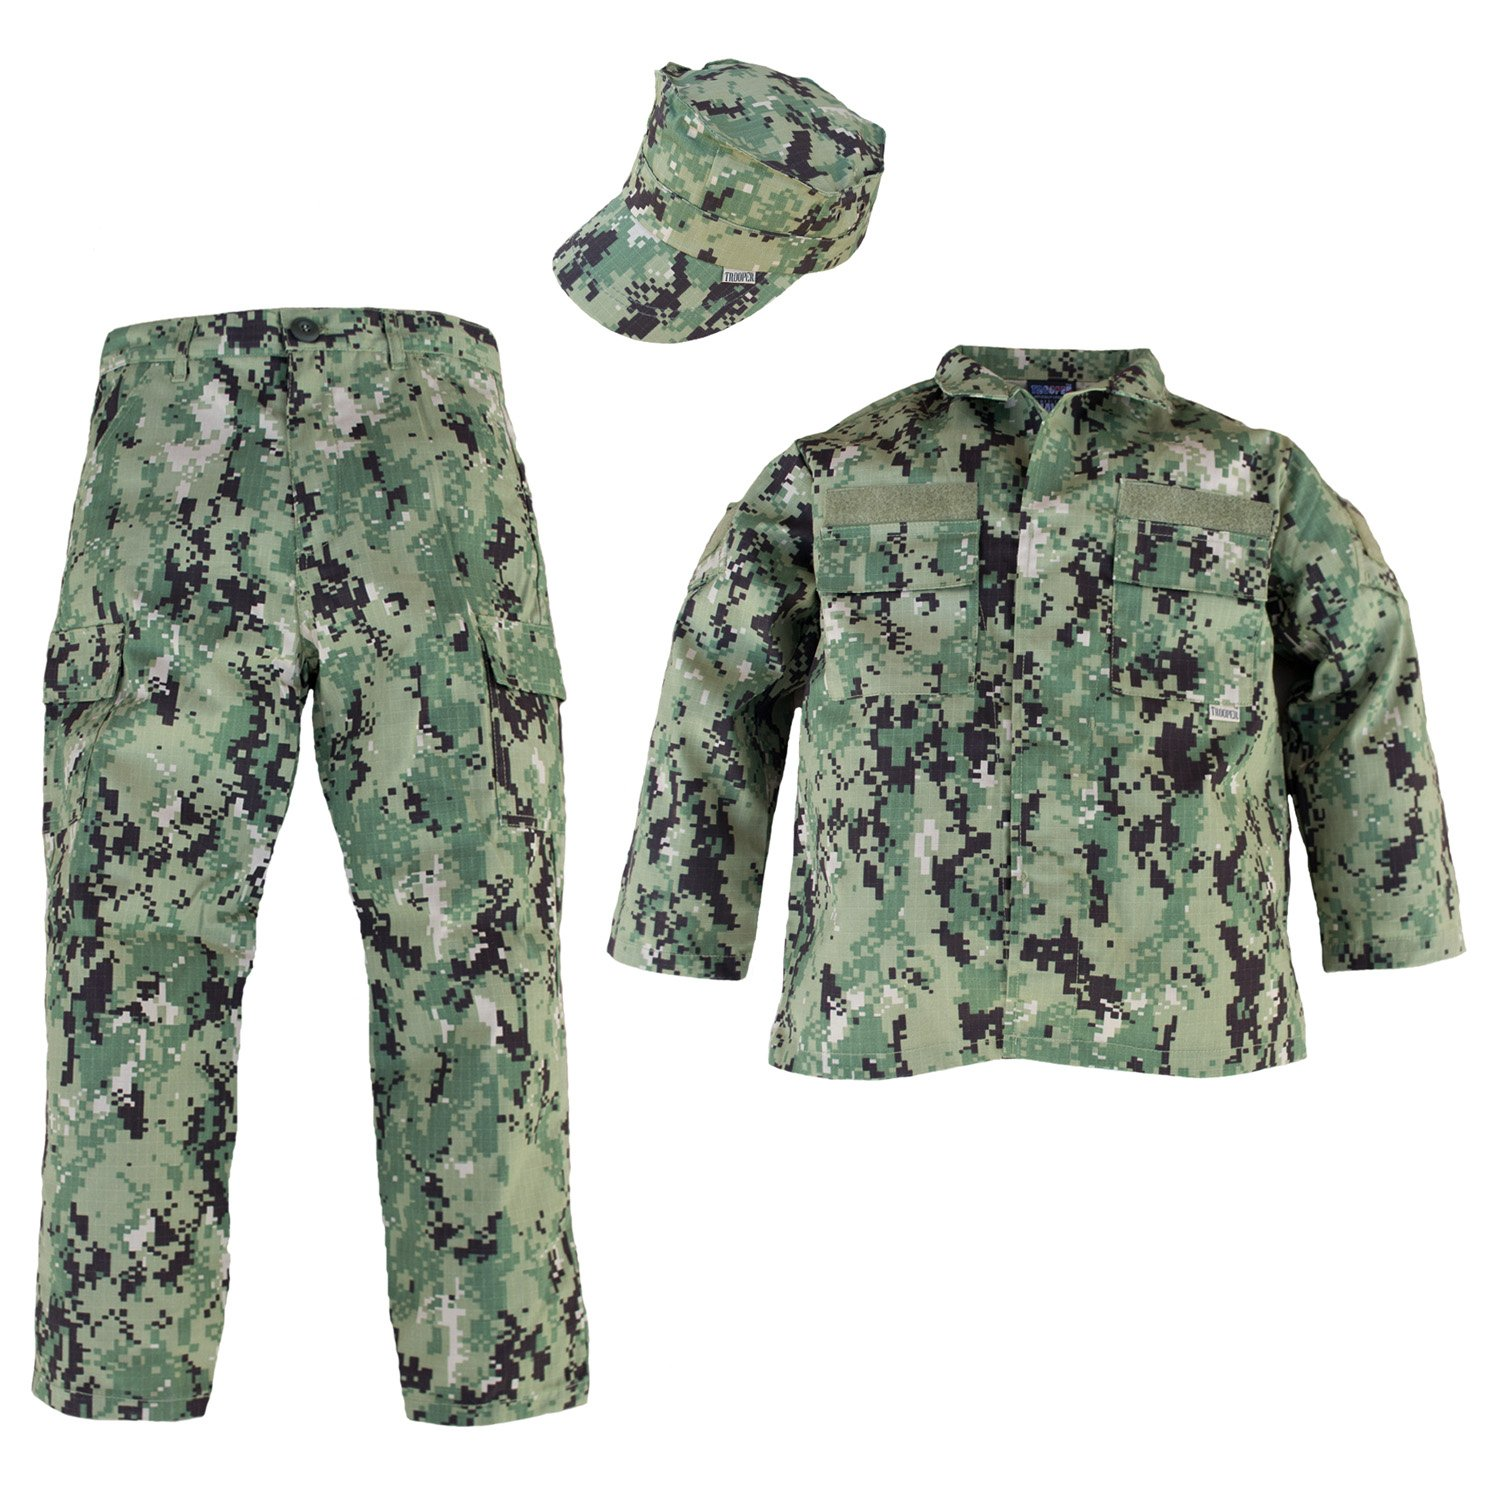 Trendy Apparel Shop Kid's US Soldier Digital Camouflage Uniform 3pc Set Costume Cap, Jacket, Pants - NWU III - XS by Trendy Apparel Shop